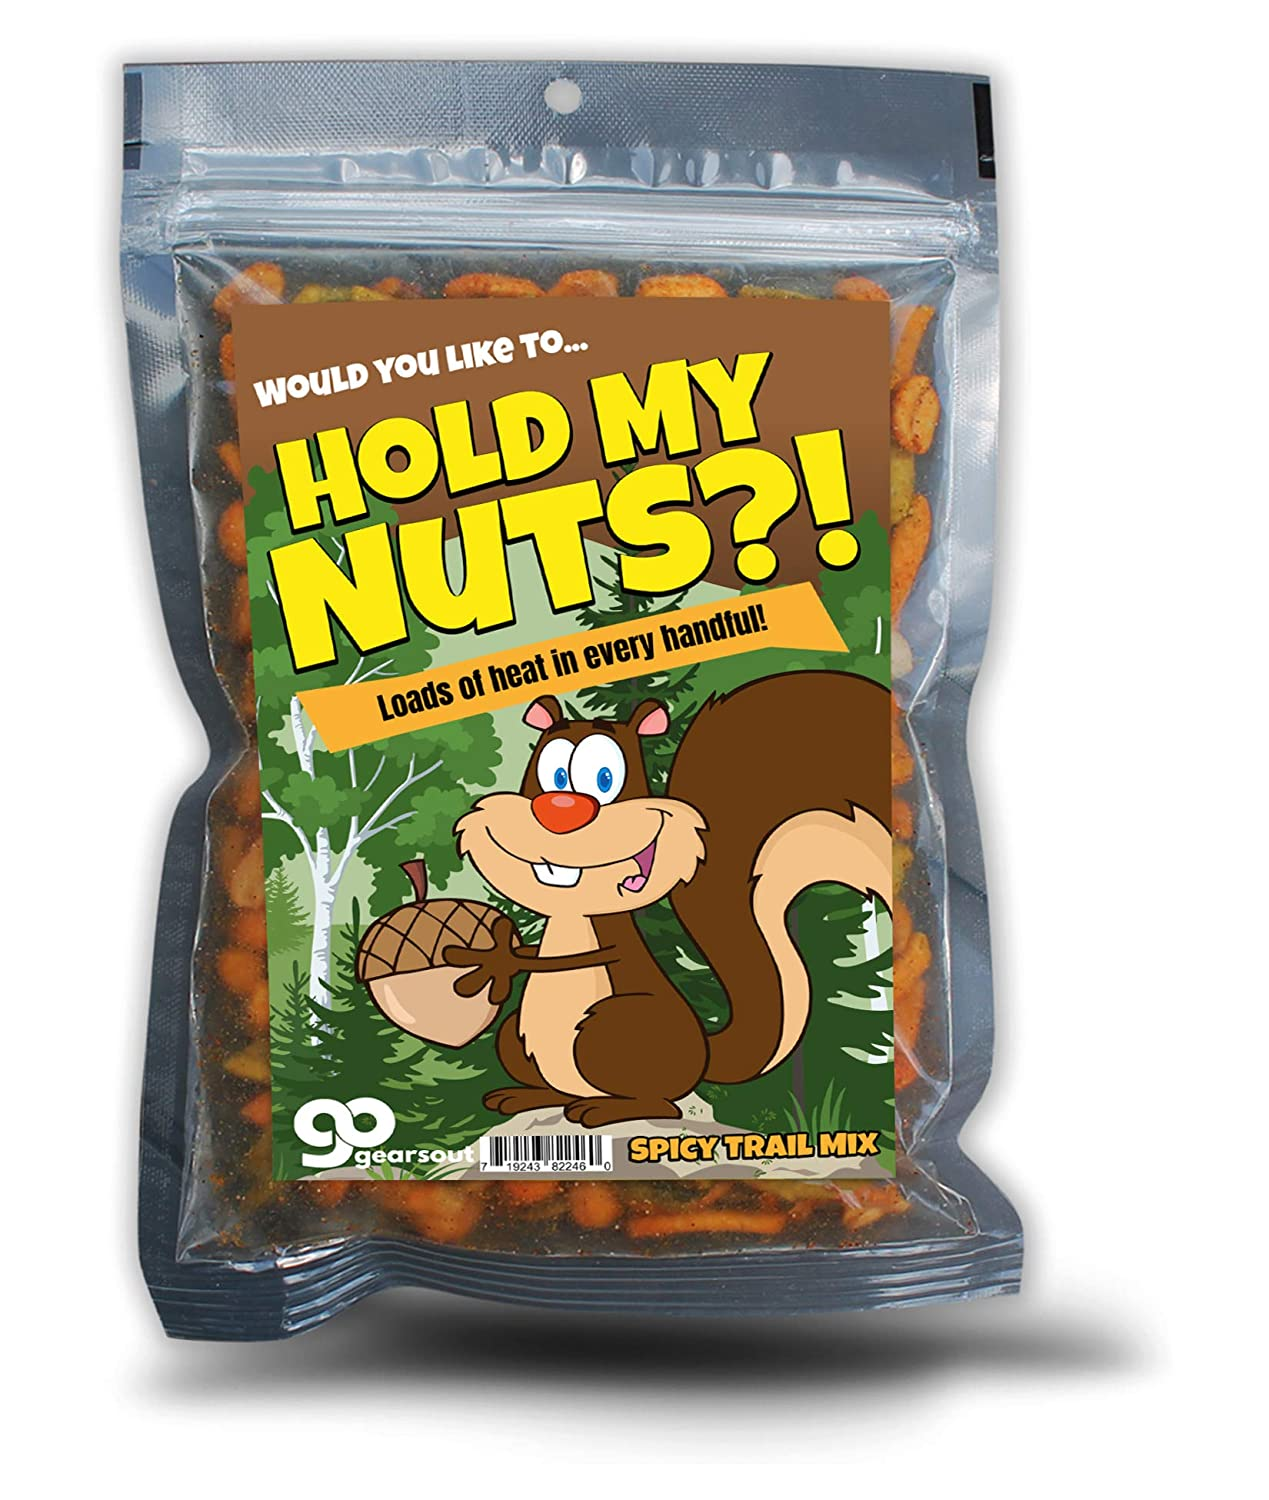 Hold My Nuts Spicy Trail Mix - Funny Squirrel with Acorn Design - Spicy Snacks for Men and Women - Premium Blend, Made in the USA